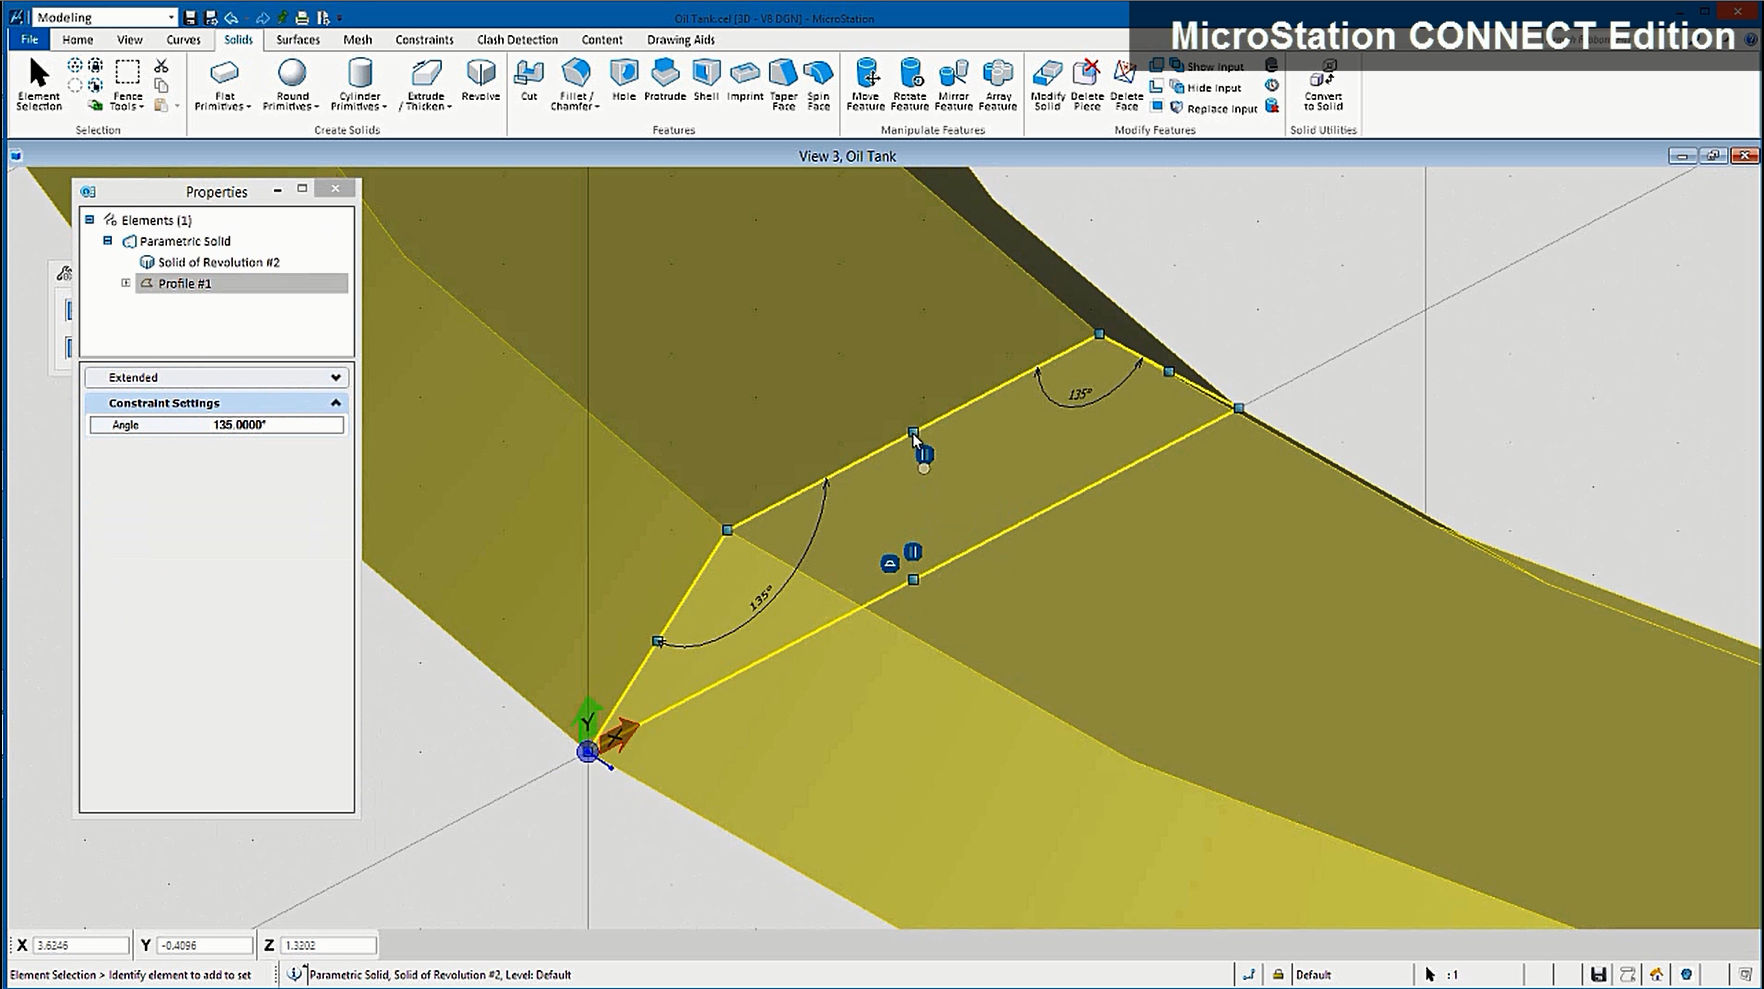 MicroStation Demo - Robust parametric constraints and comprehensive 3D modeling